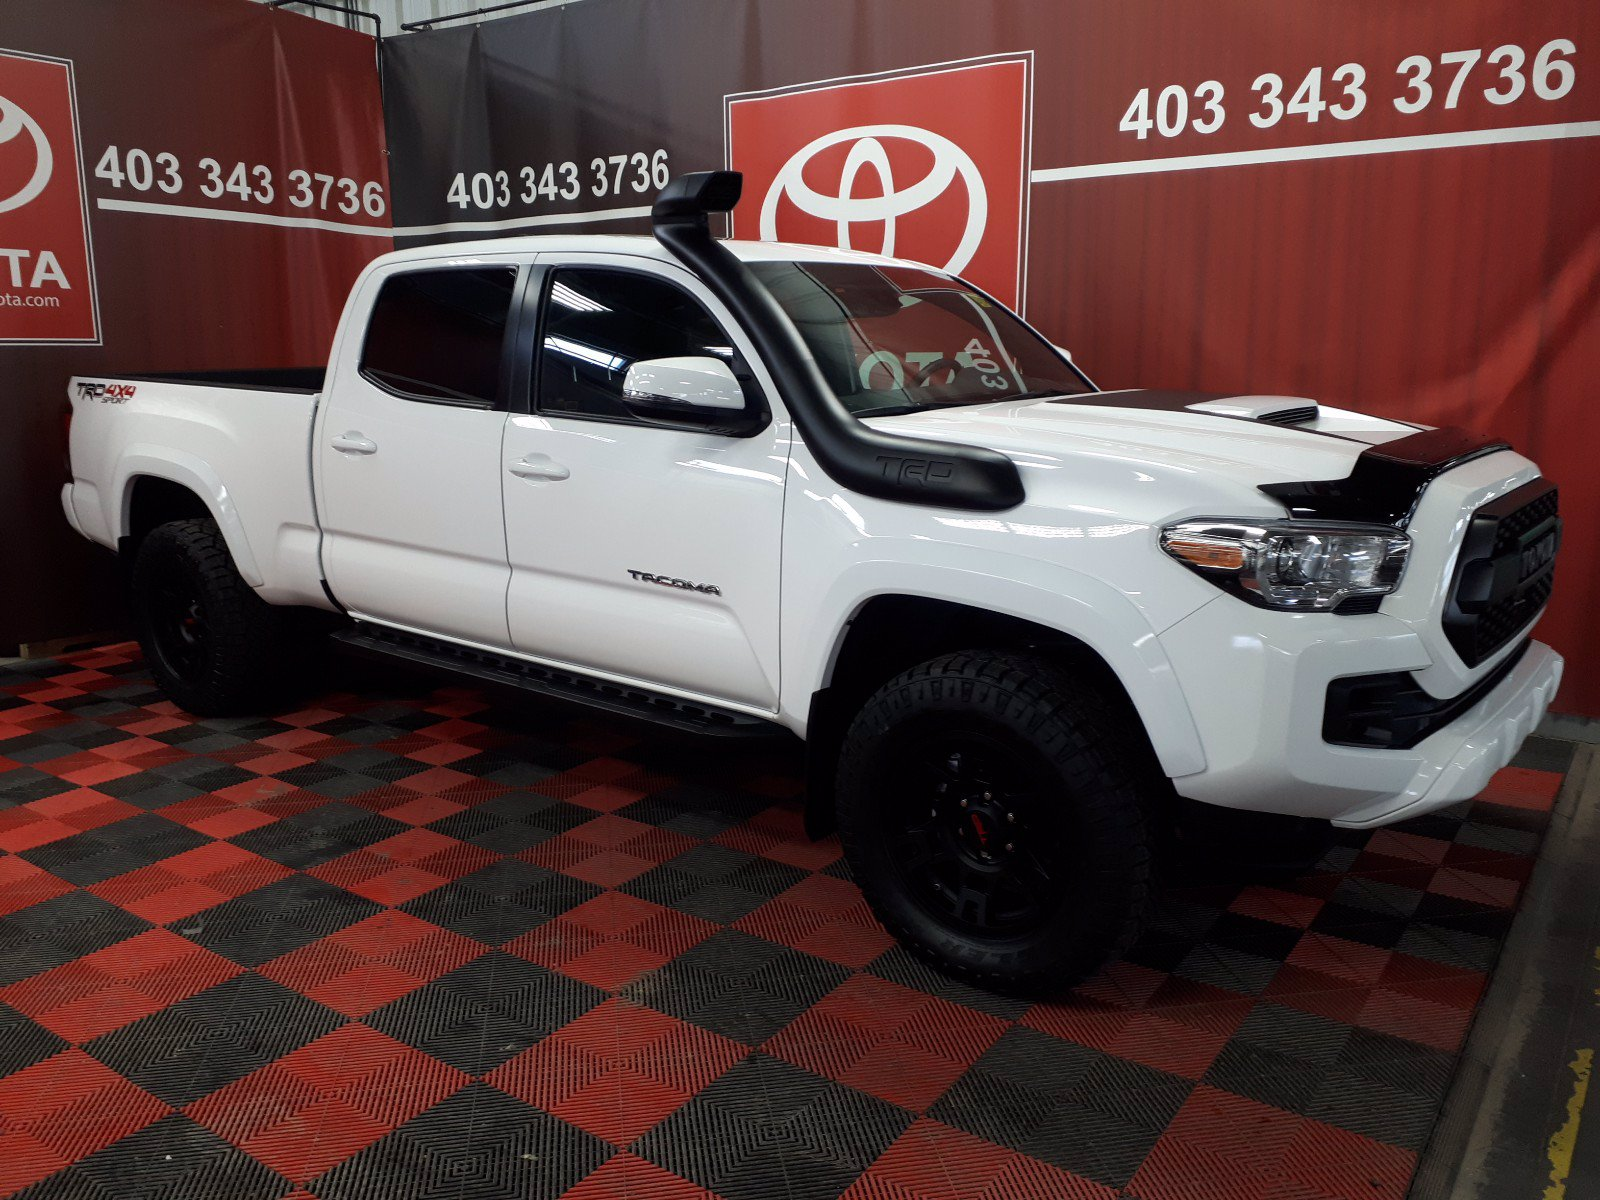 New 2019 Toyota Tacoma TRD Sport - Adventure Edition With Navigation & 4WD